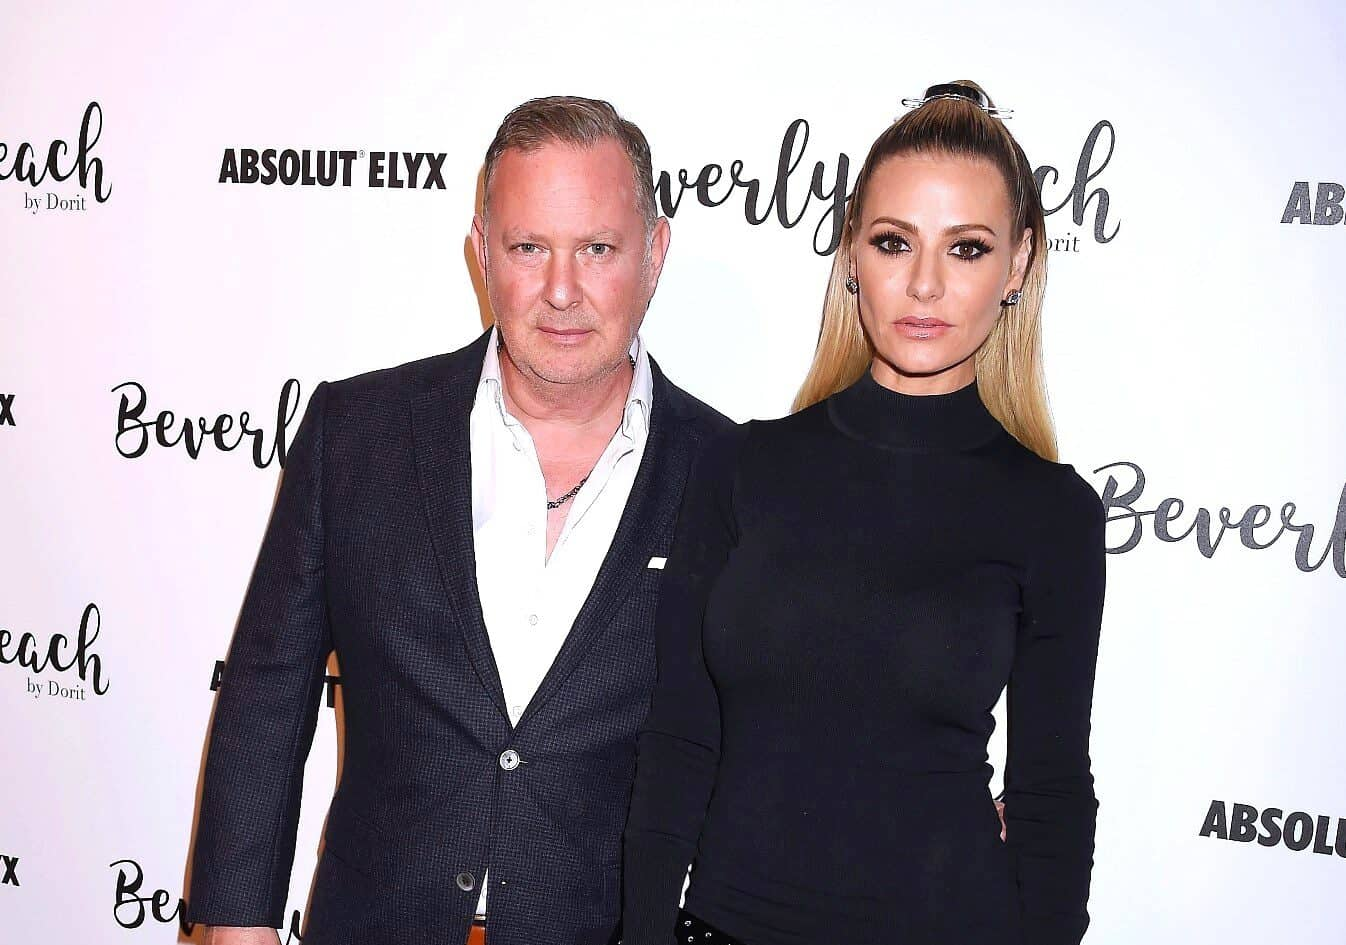 PHOTOS: See Pics of PK and Dorit Kemsley's $6.5 Million Home, Plus She Addresses the Home Only Being in Her Name and Shuts Down Haters Over Finances